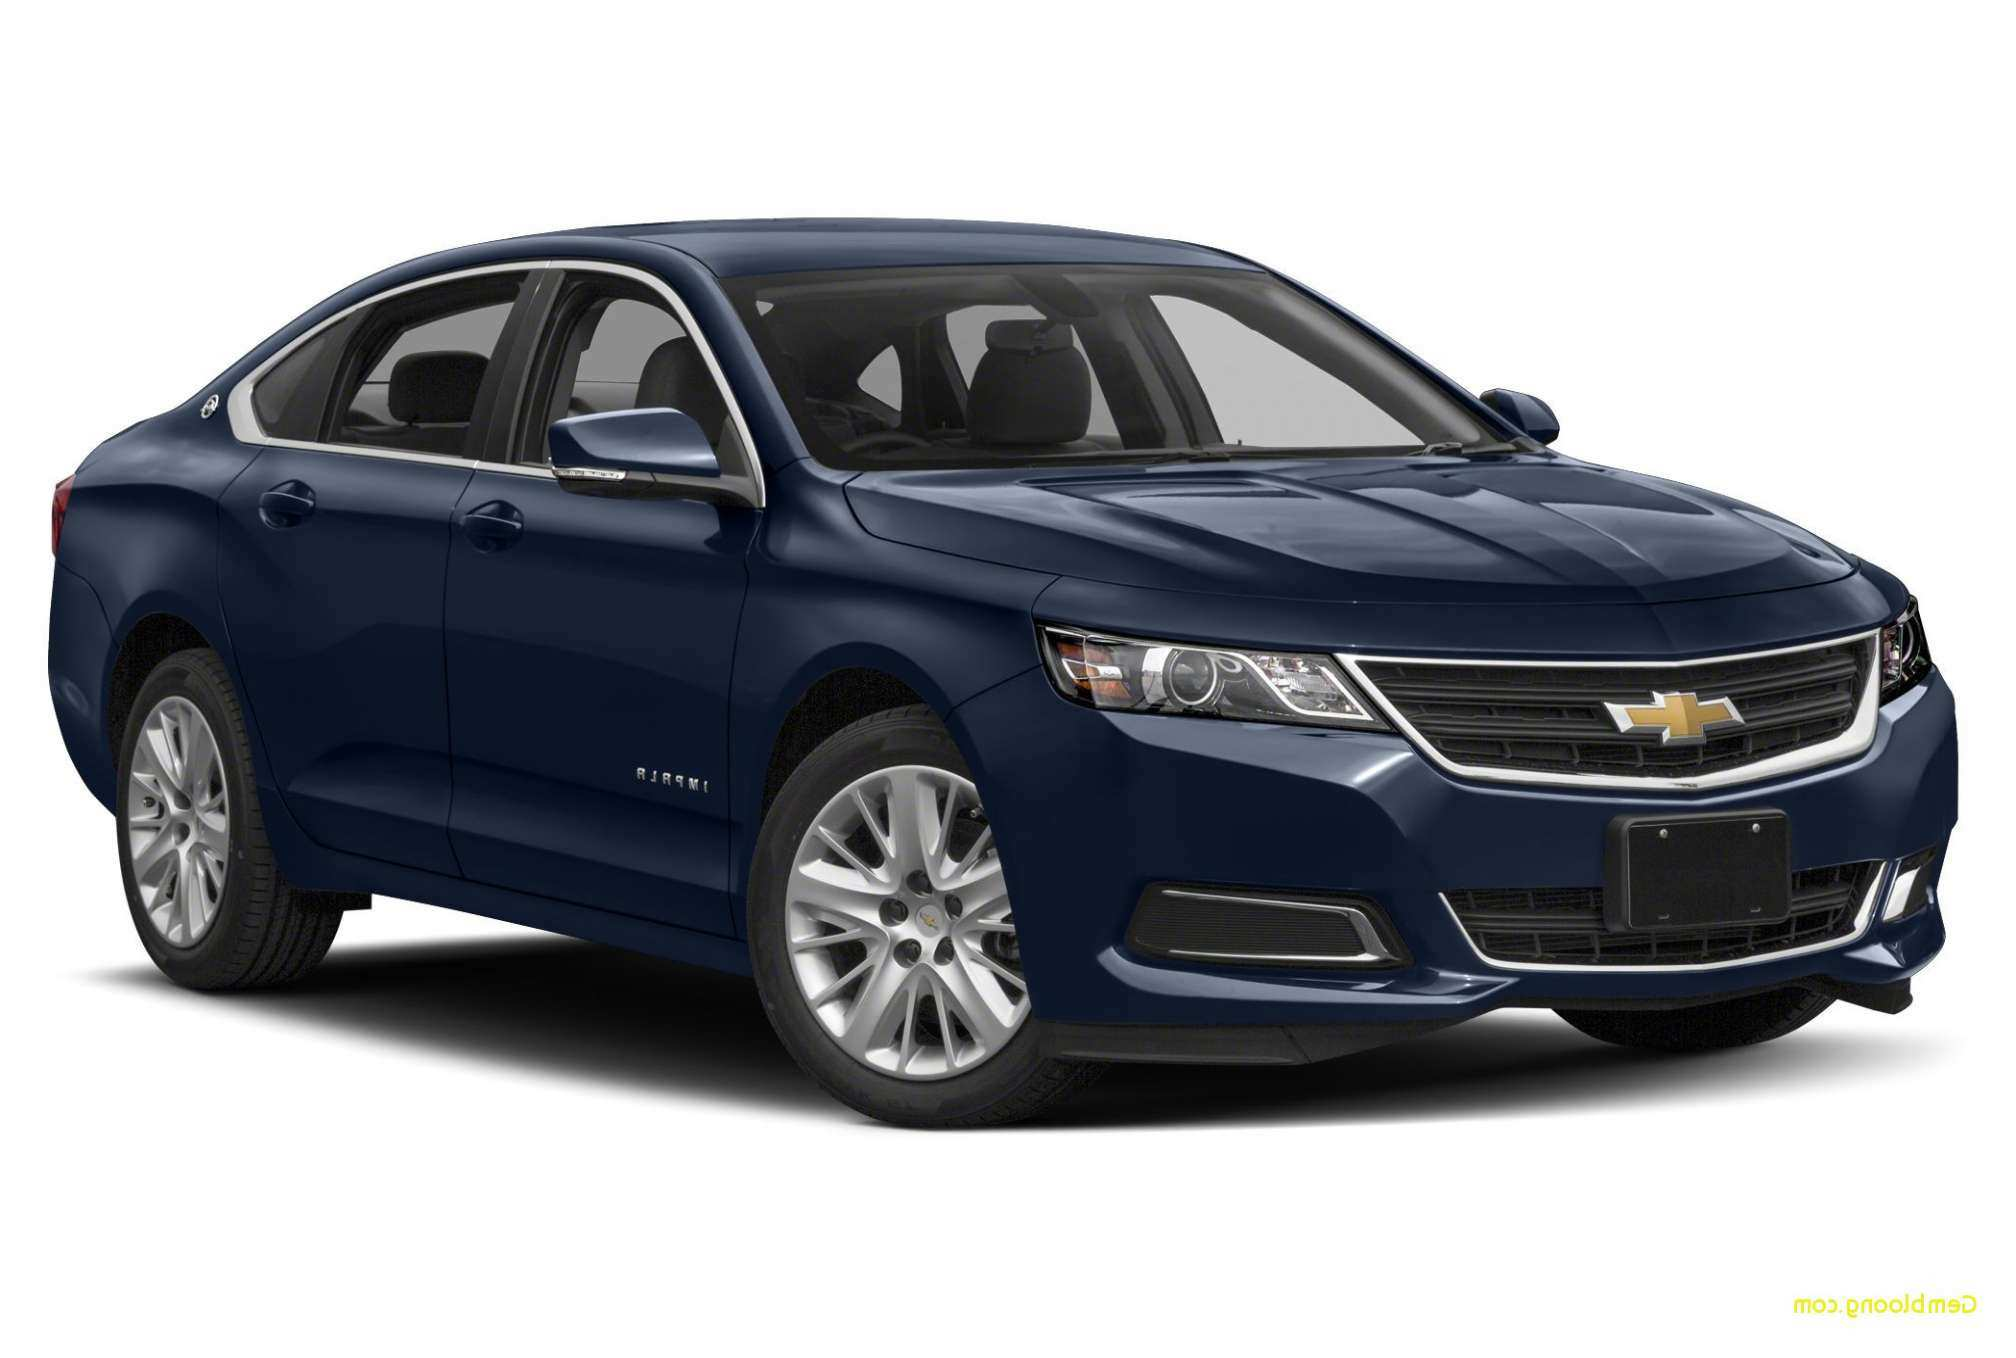 90 The 2020 Chevy Impala Ss Ltz Research New